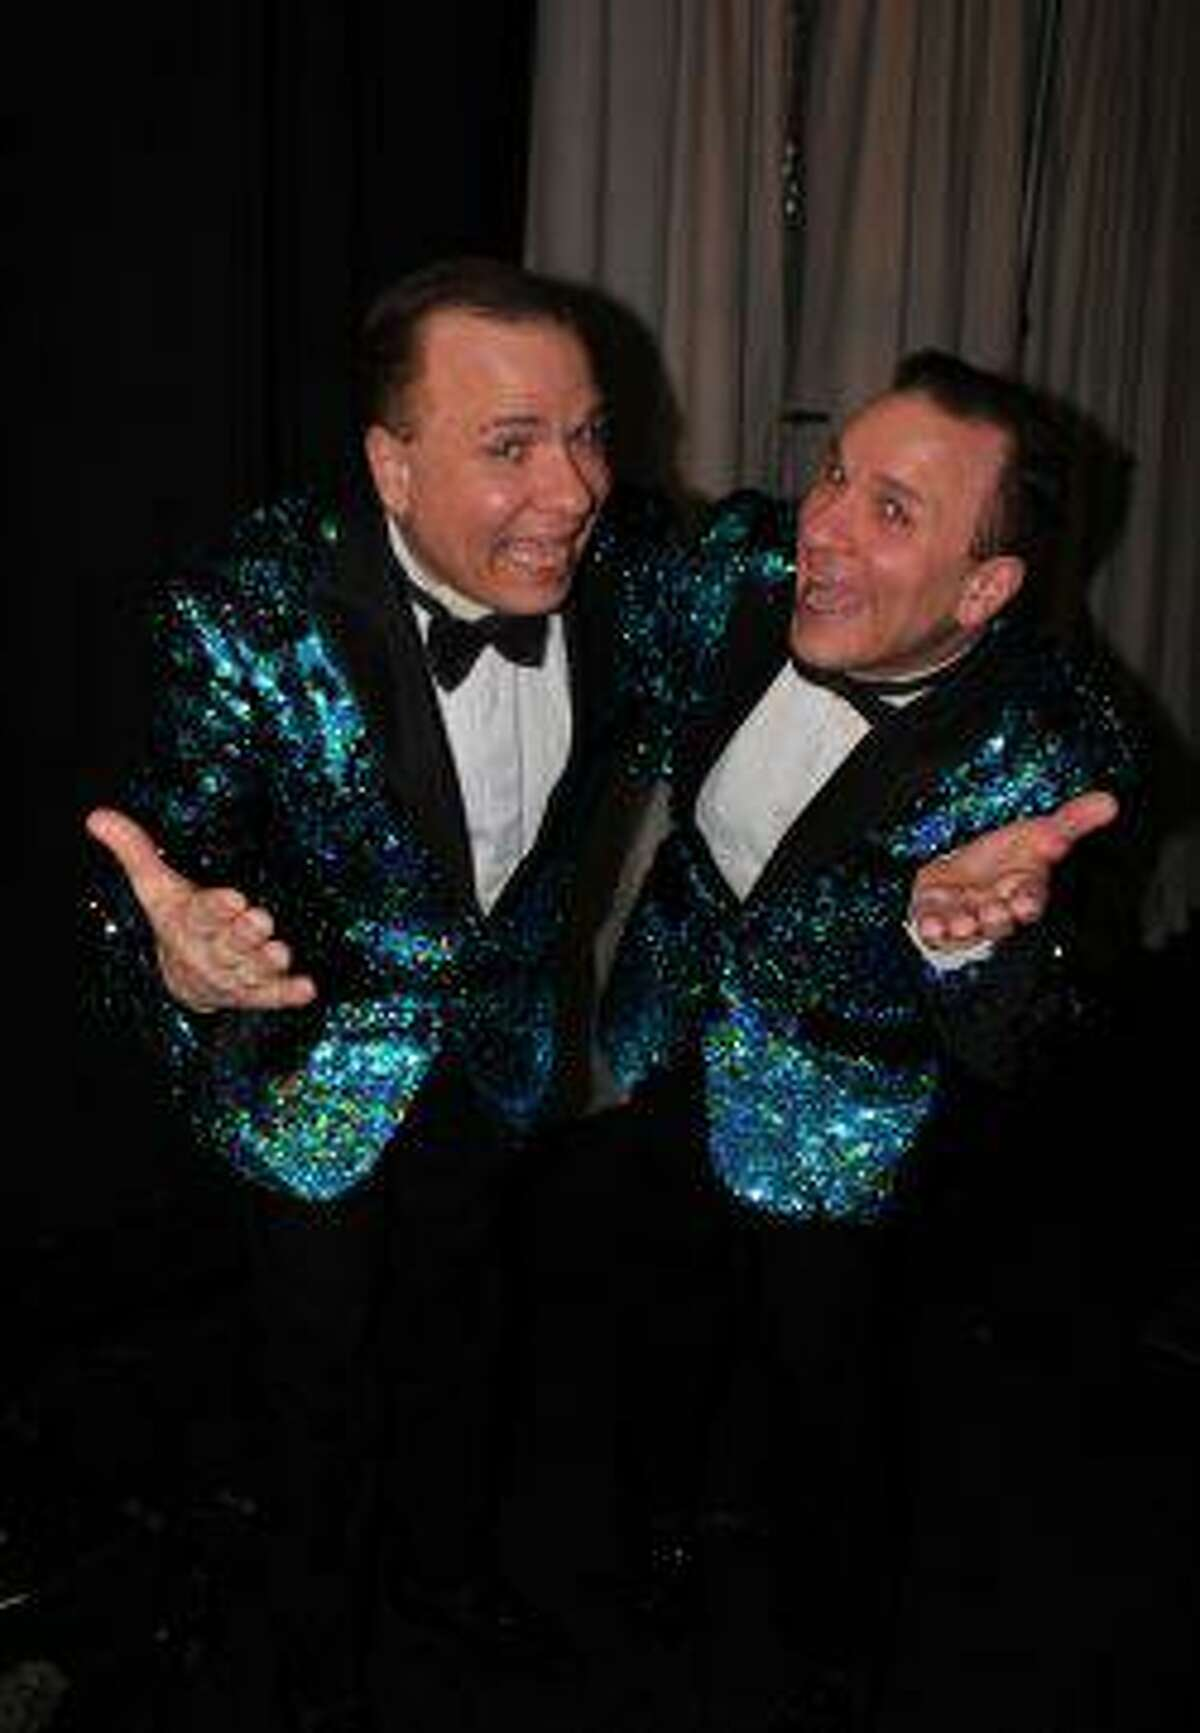 The Edwards Twins perform Sept. 11-12 at Seven Angels Theatre in Waterbury.